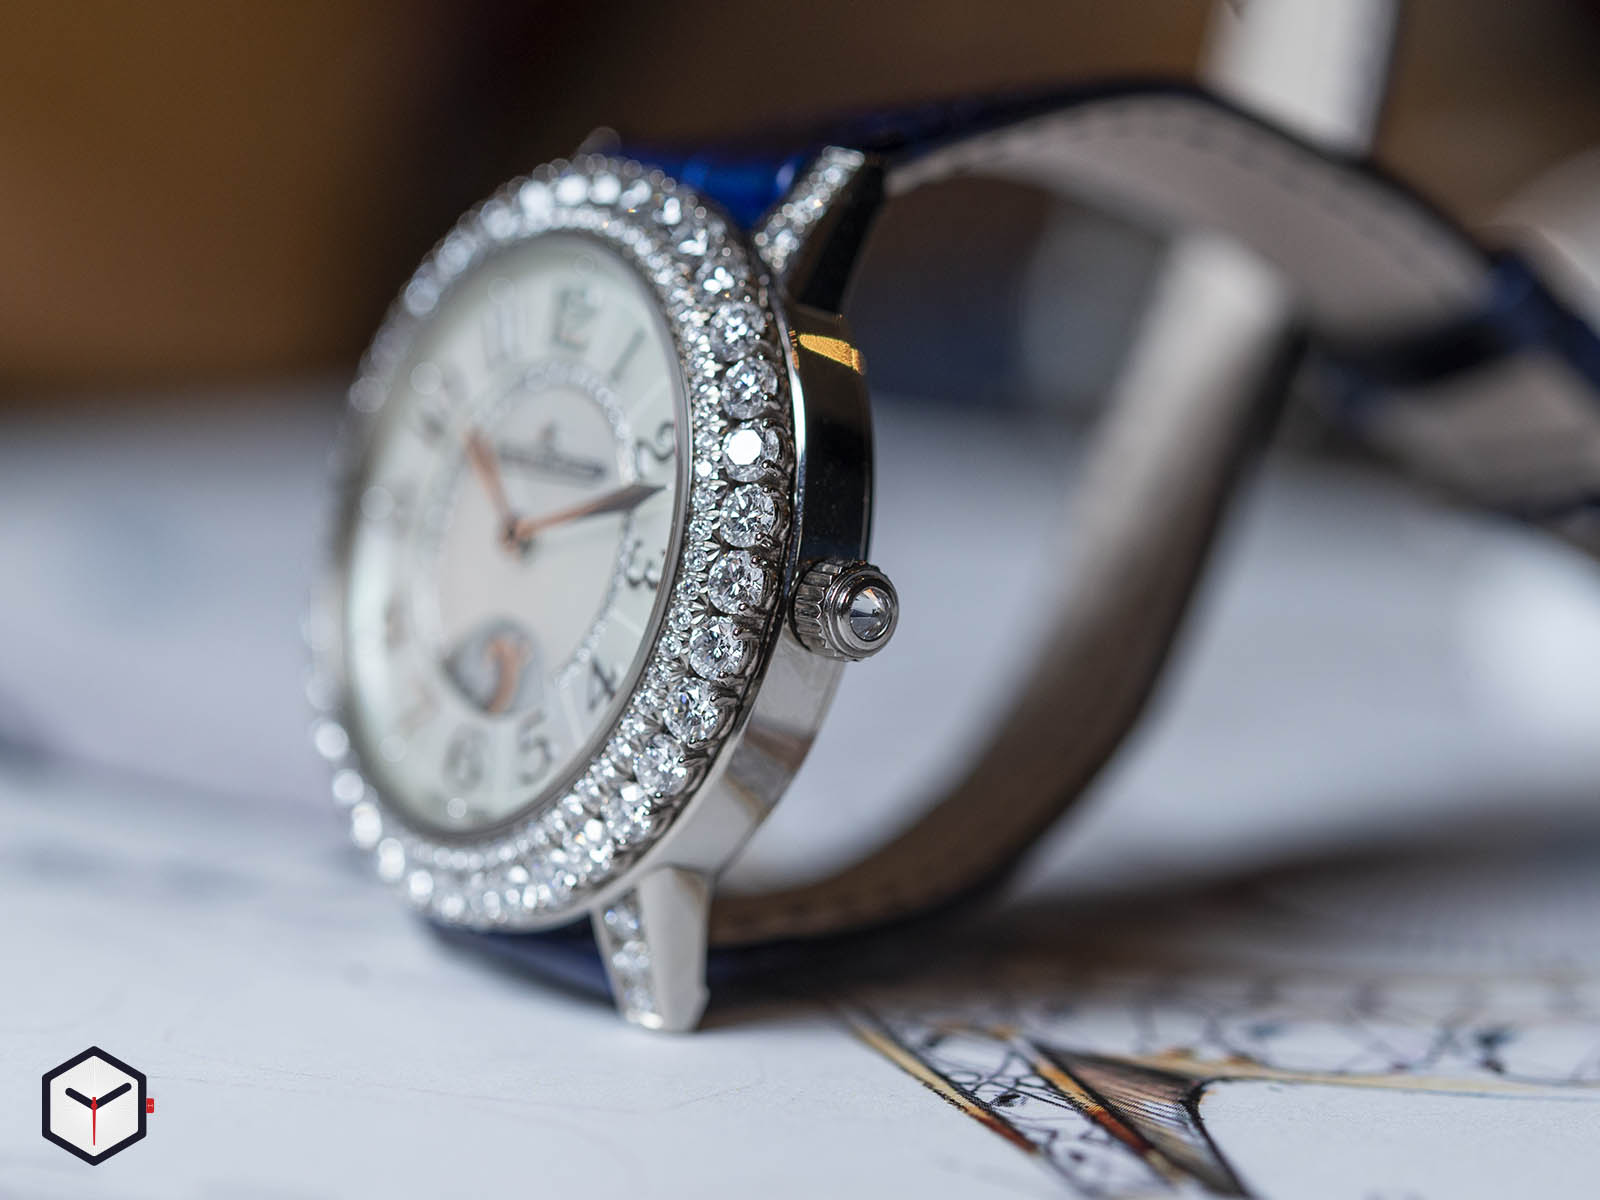 3433570-jaeger-lecoultre-rendez-vous-night-day-white-gold-sihh-2019-4.jpg